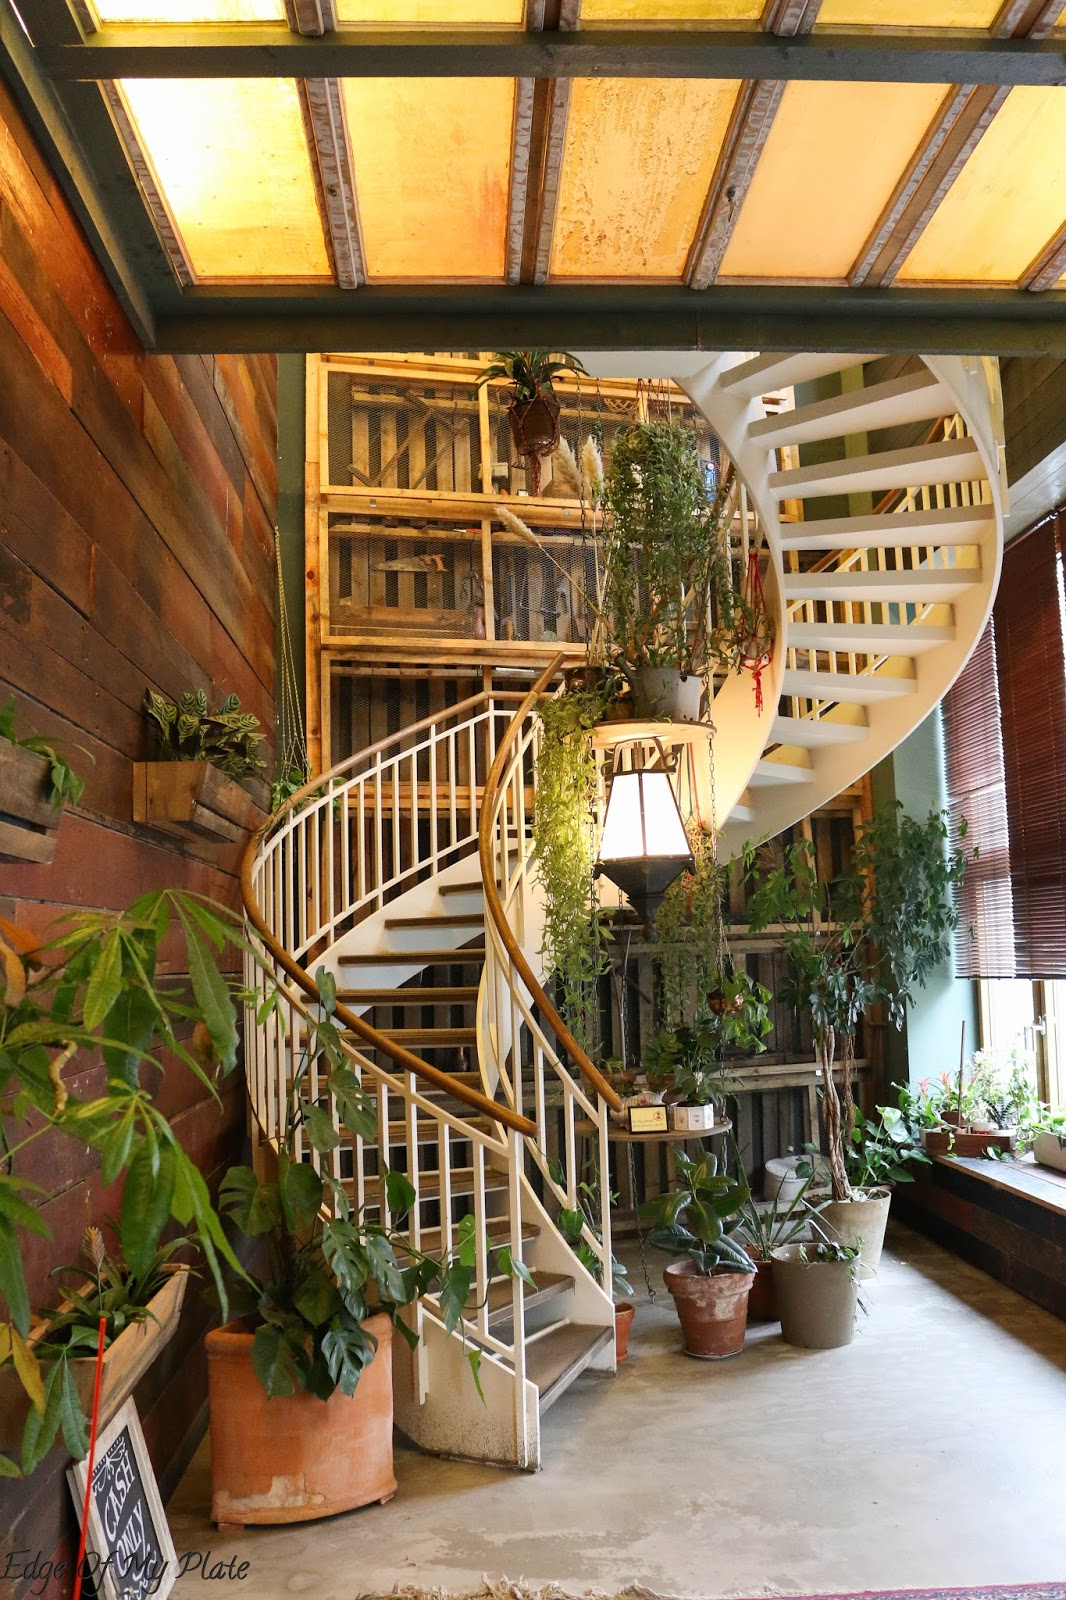 Upon entering little house of wonder you feel like you are transported to a different place its got a very calm atmosphere with a staircase winding its